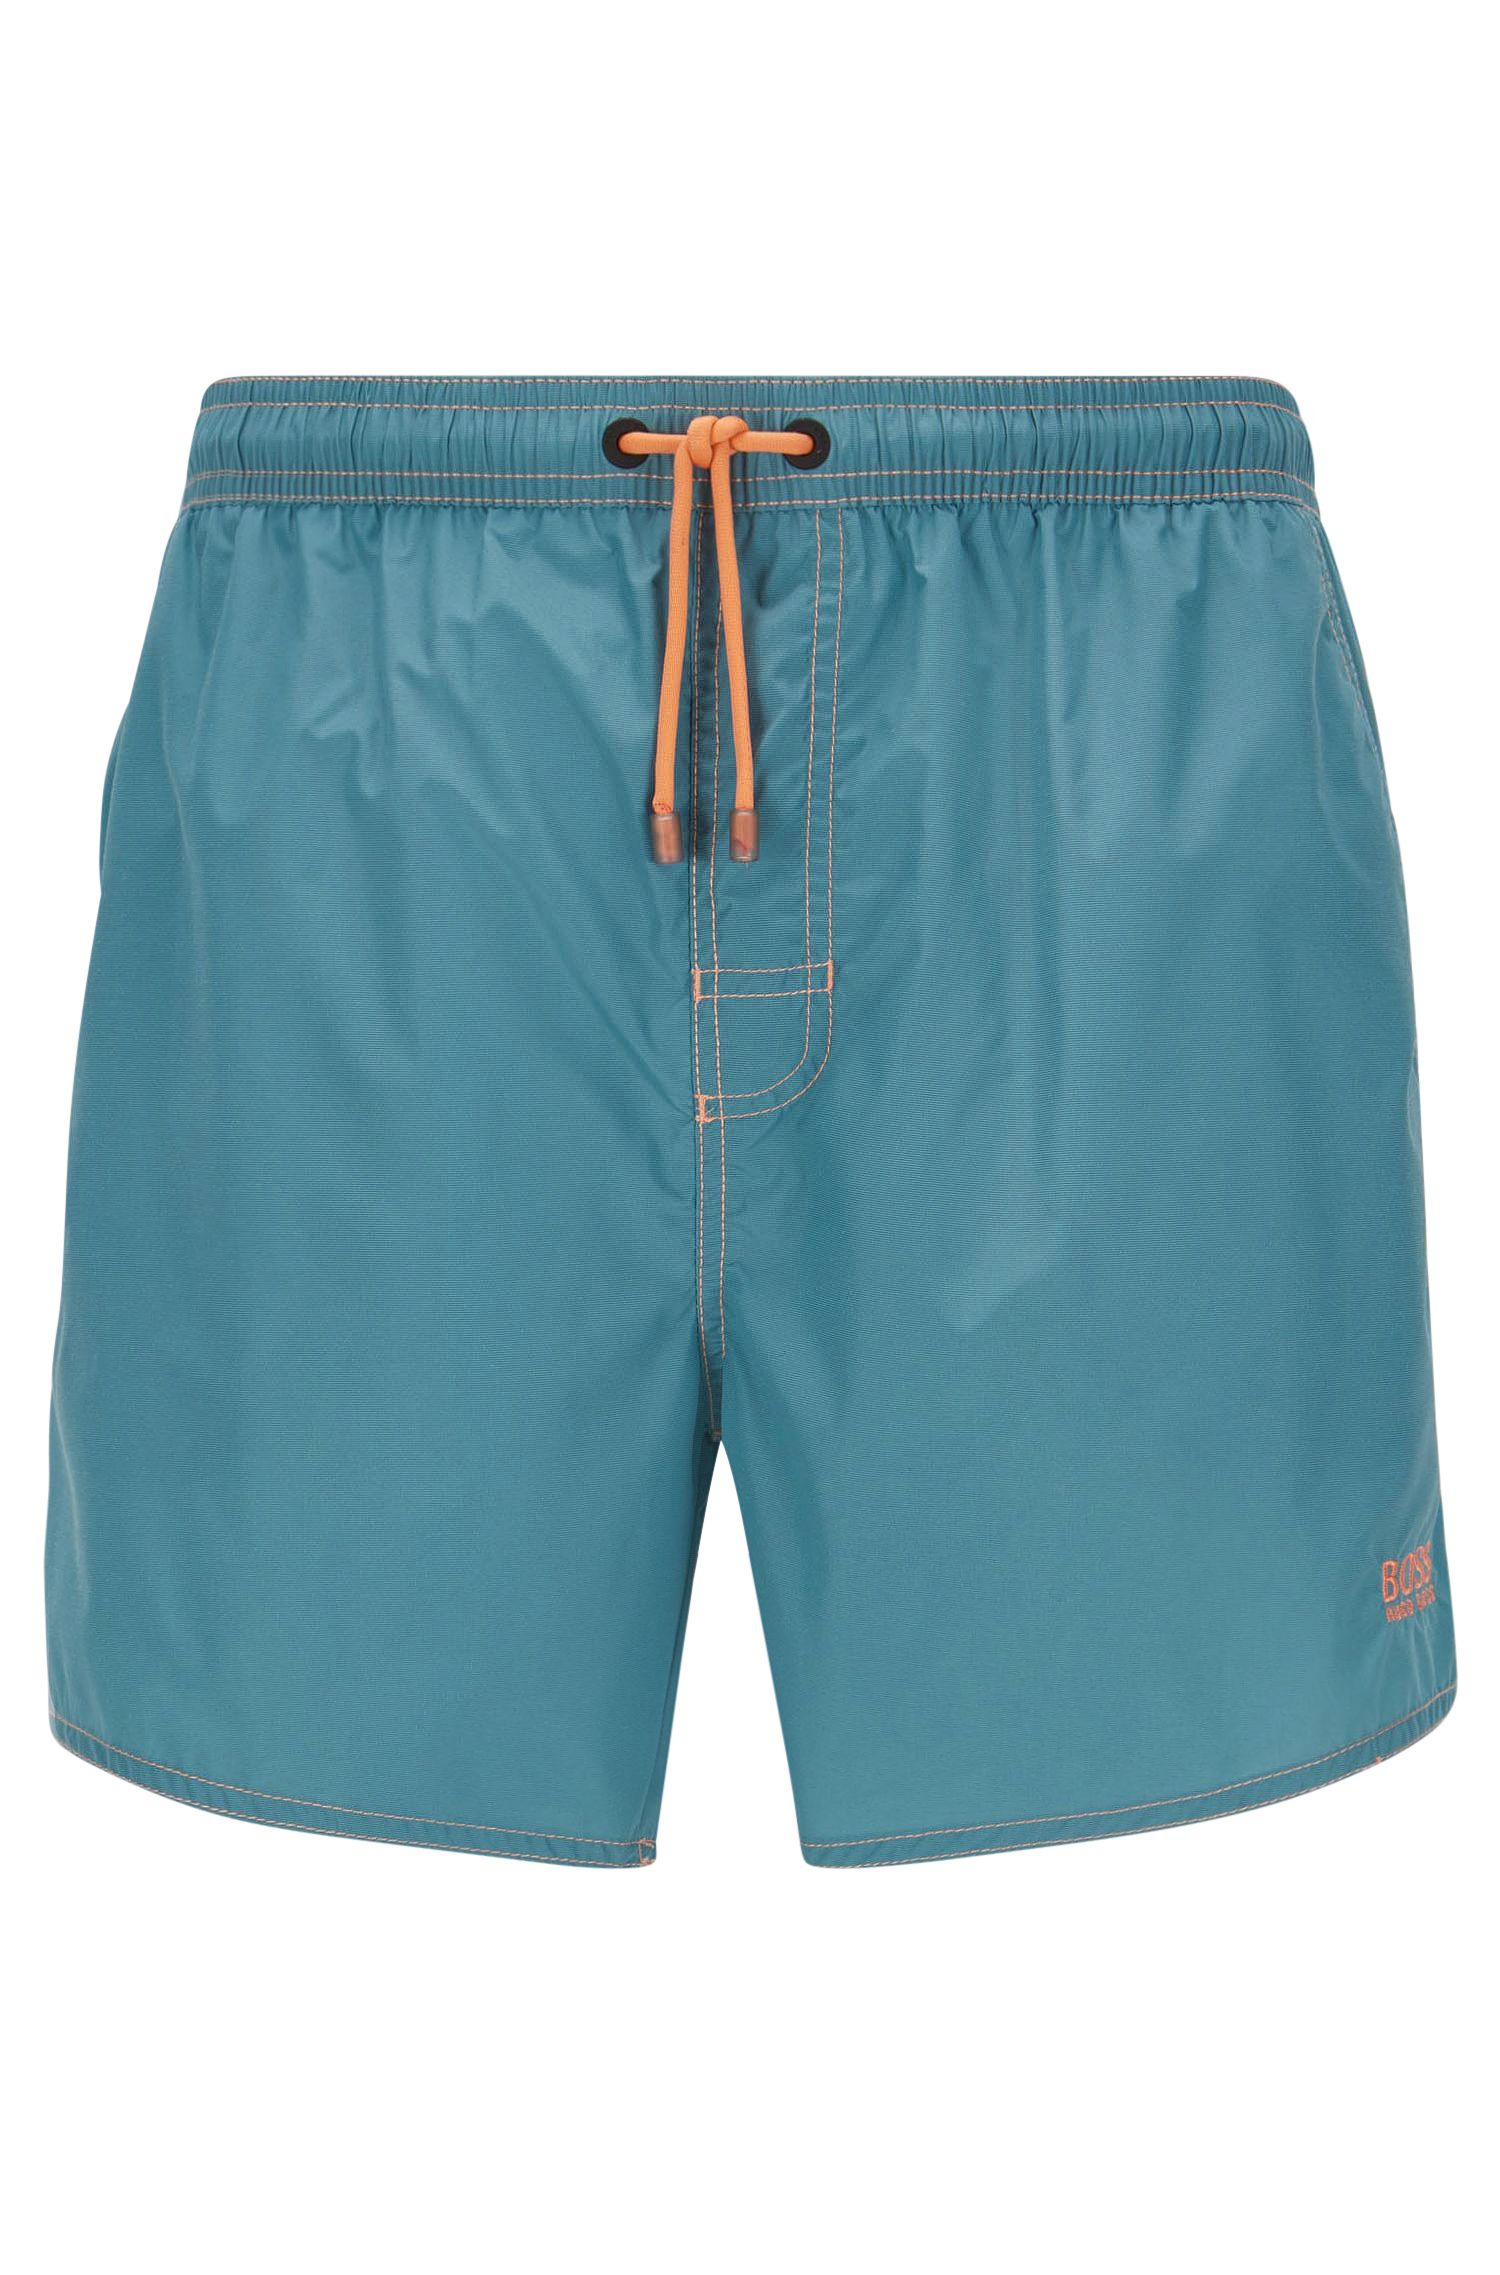 Quick Dry Swim Trunks | Lobster, Light Blue